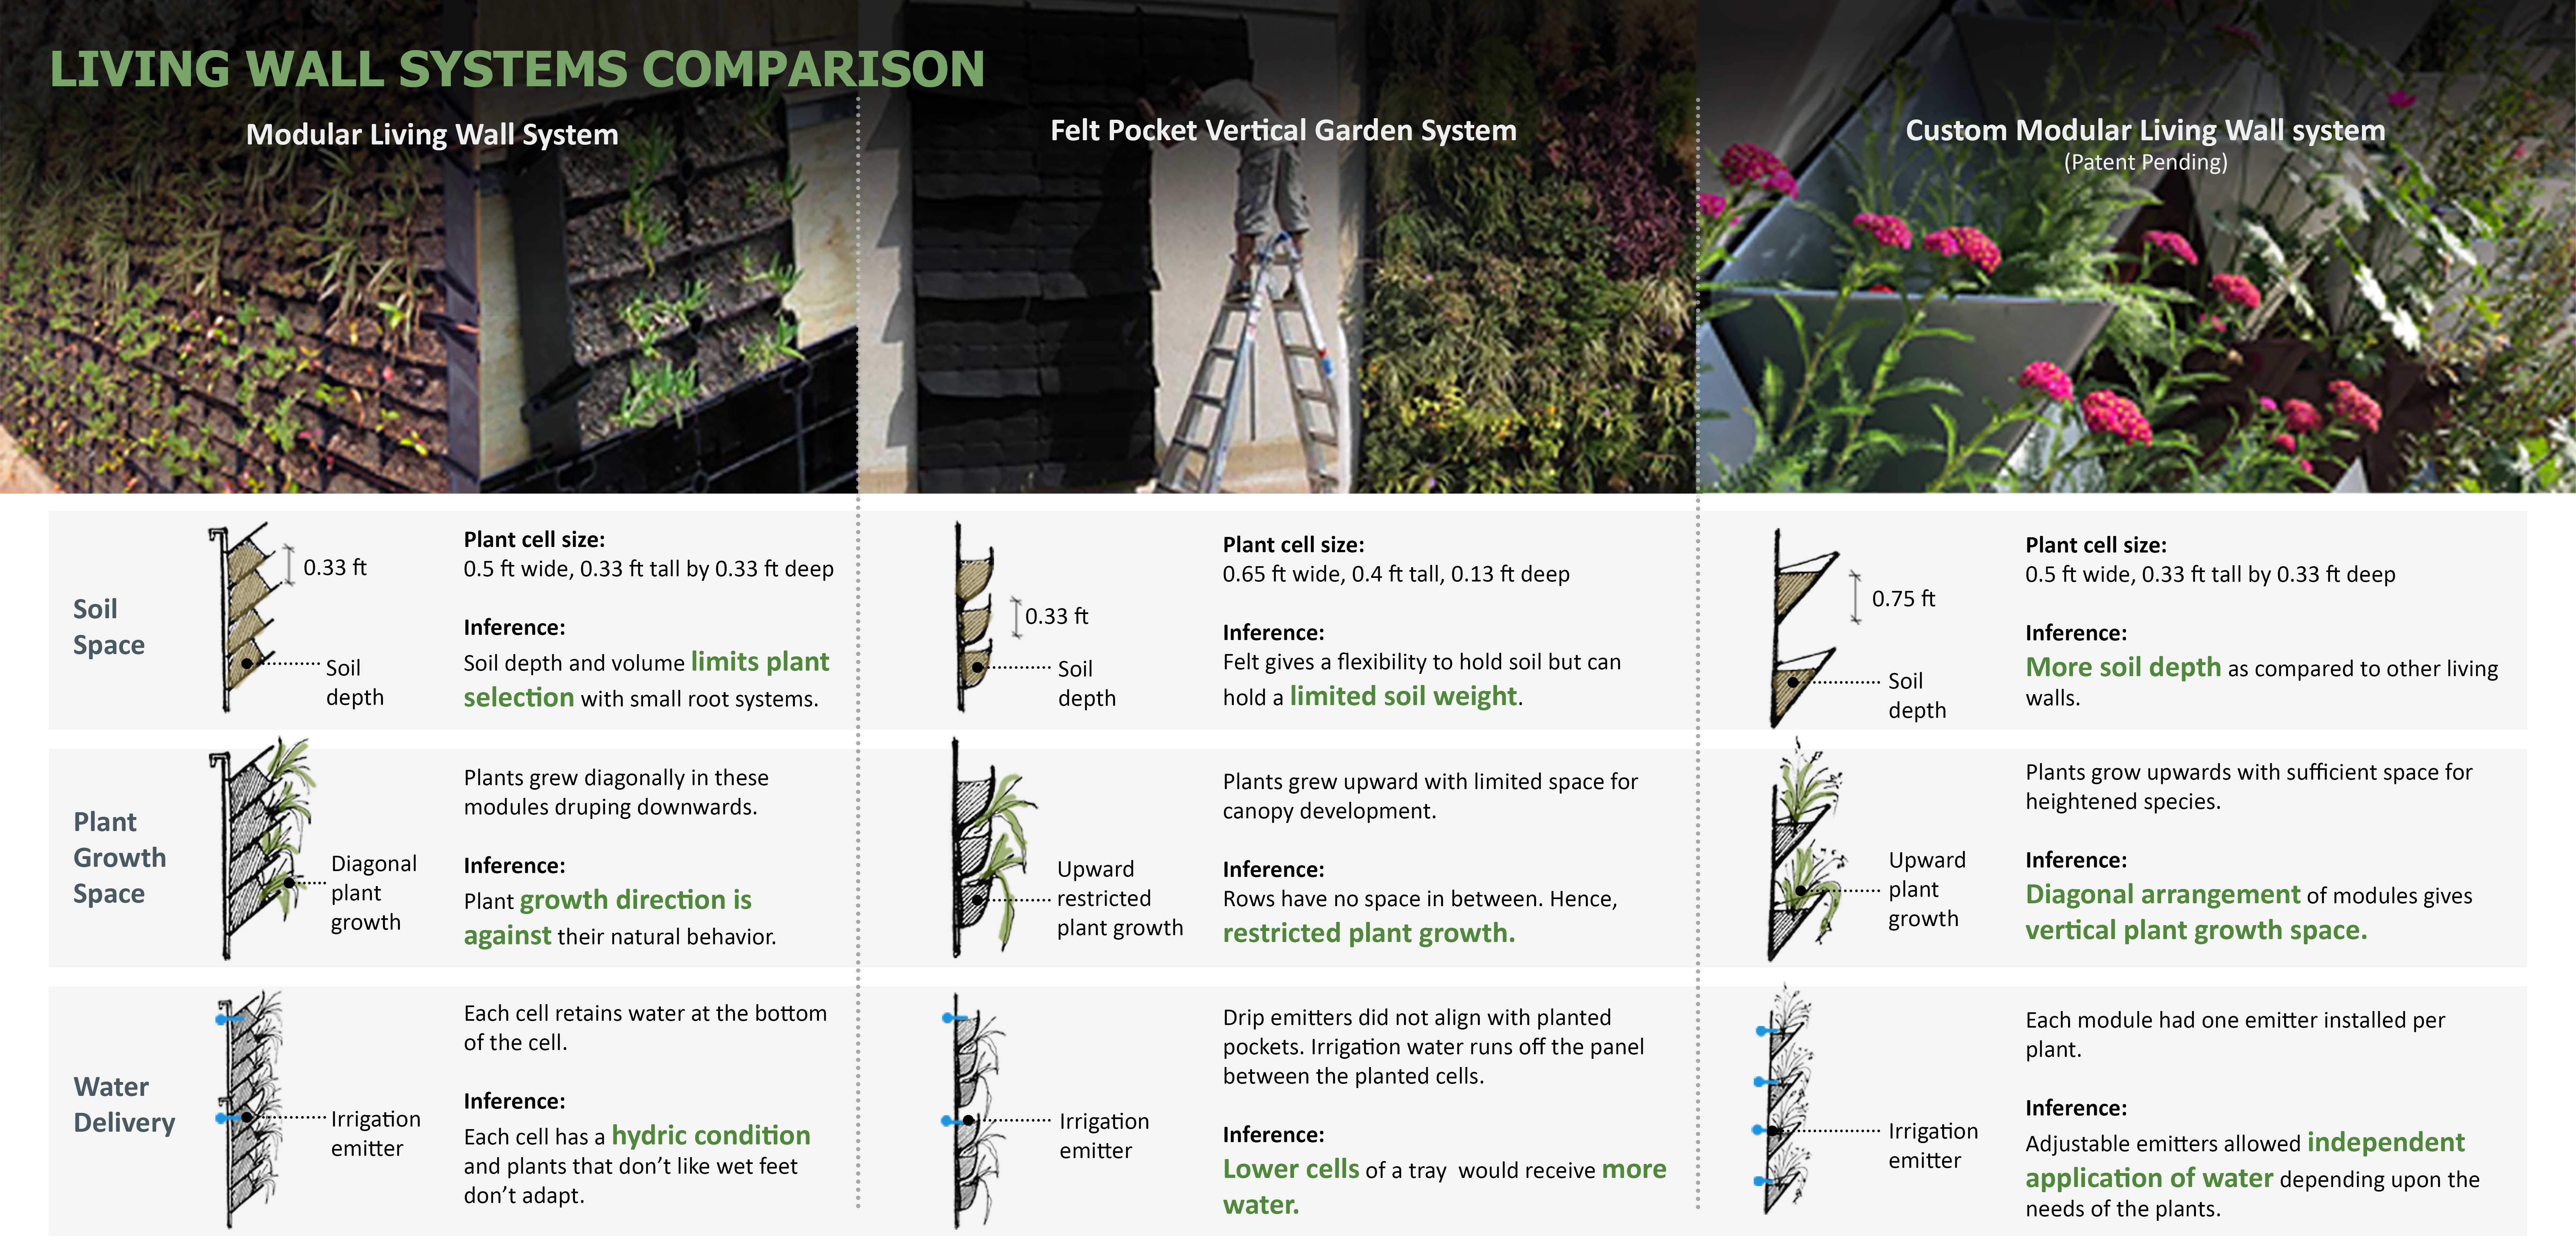 Living Wall Systems Comparison